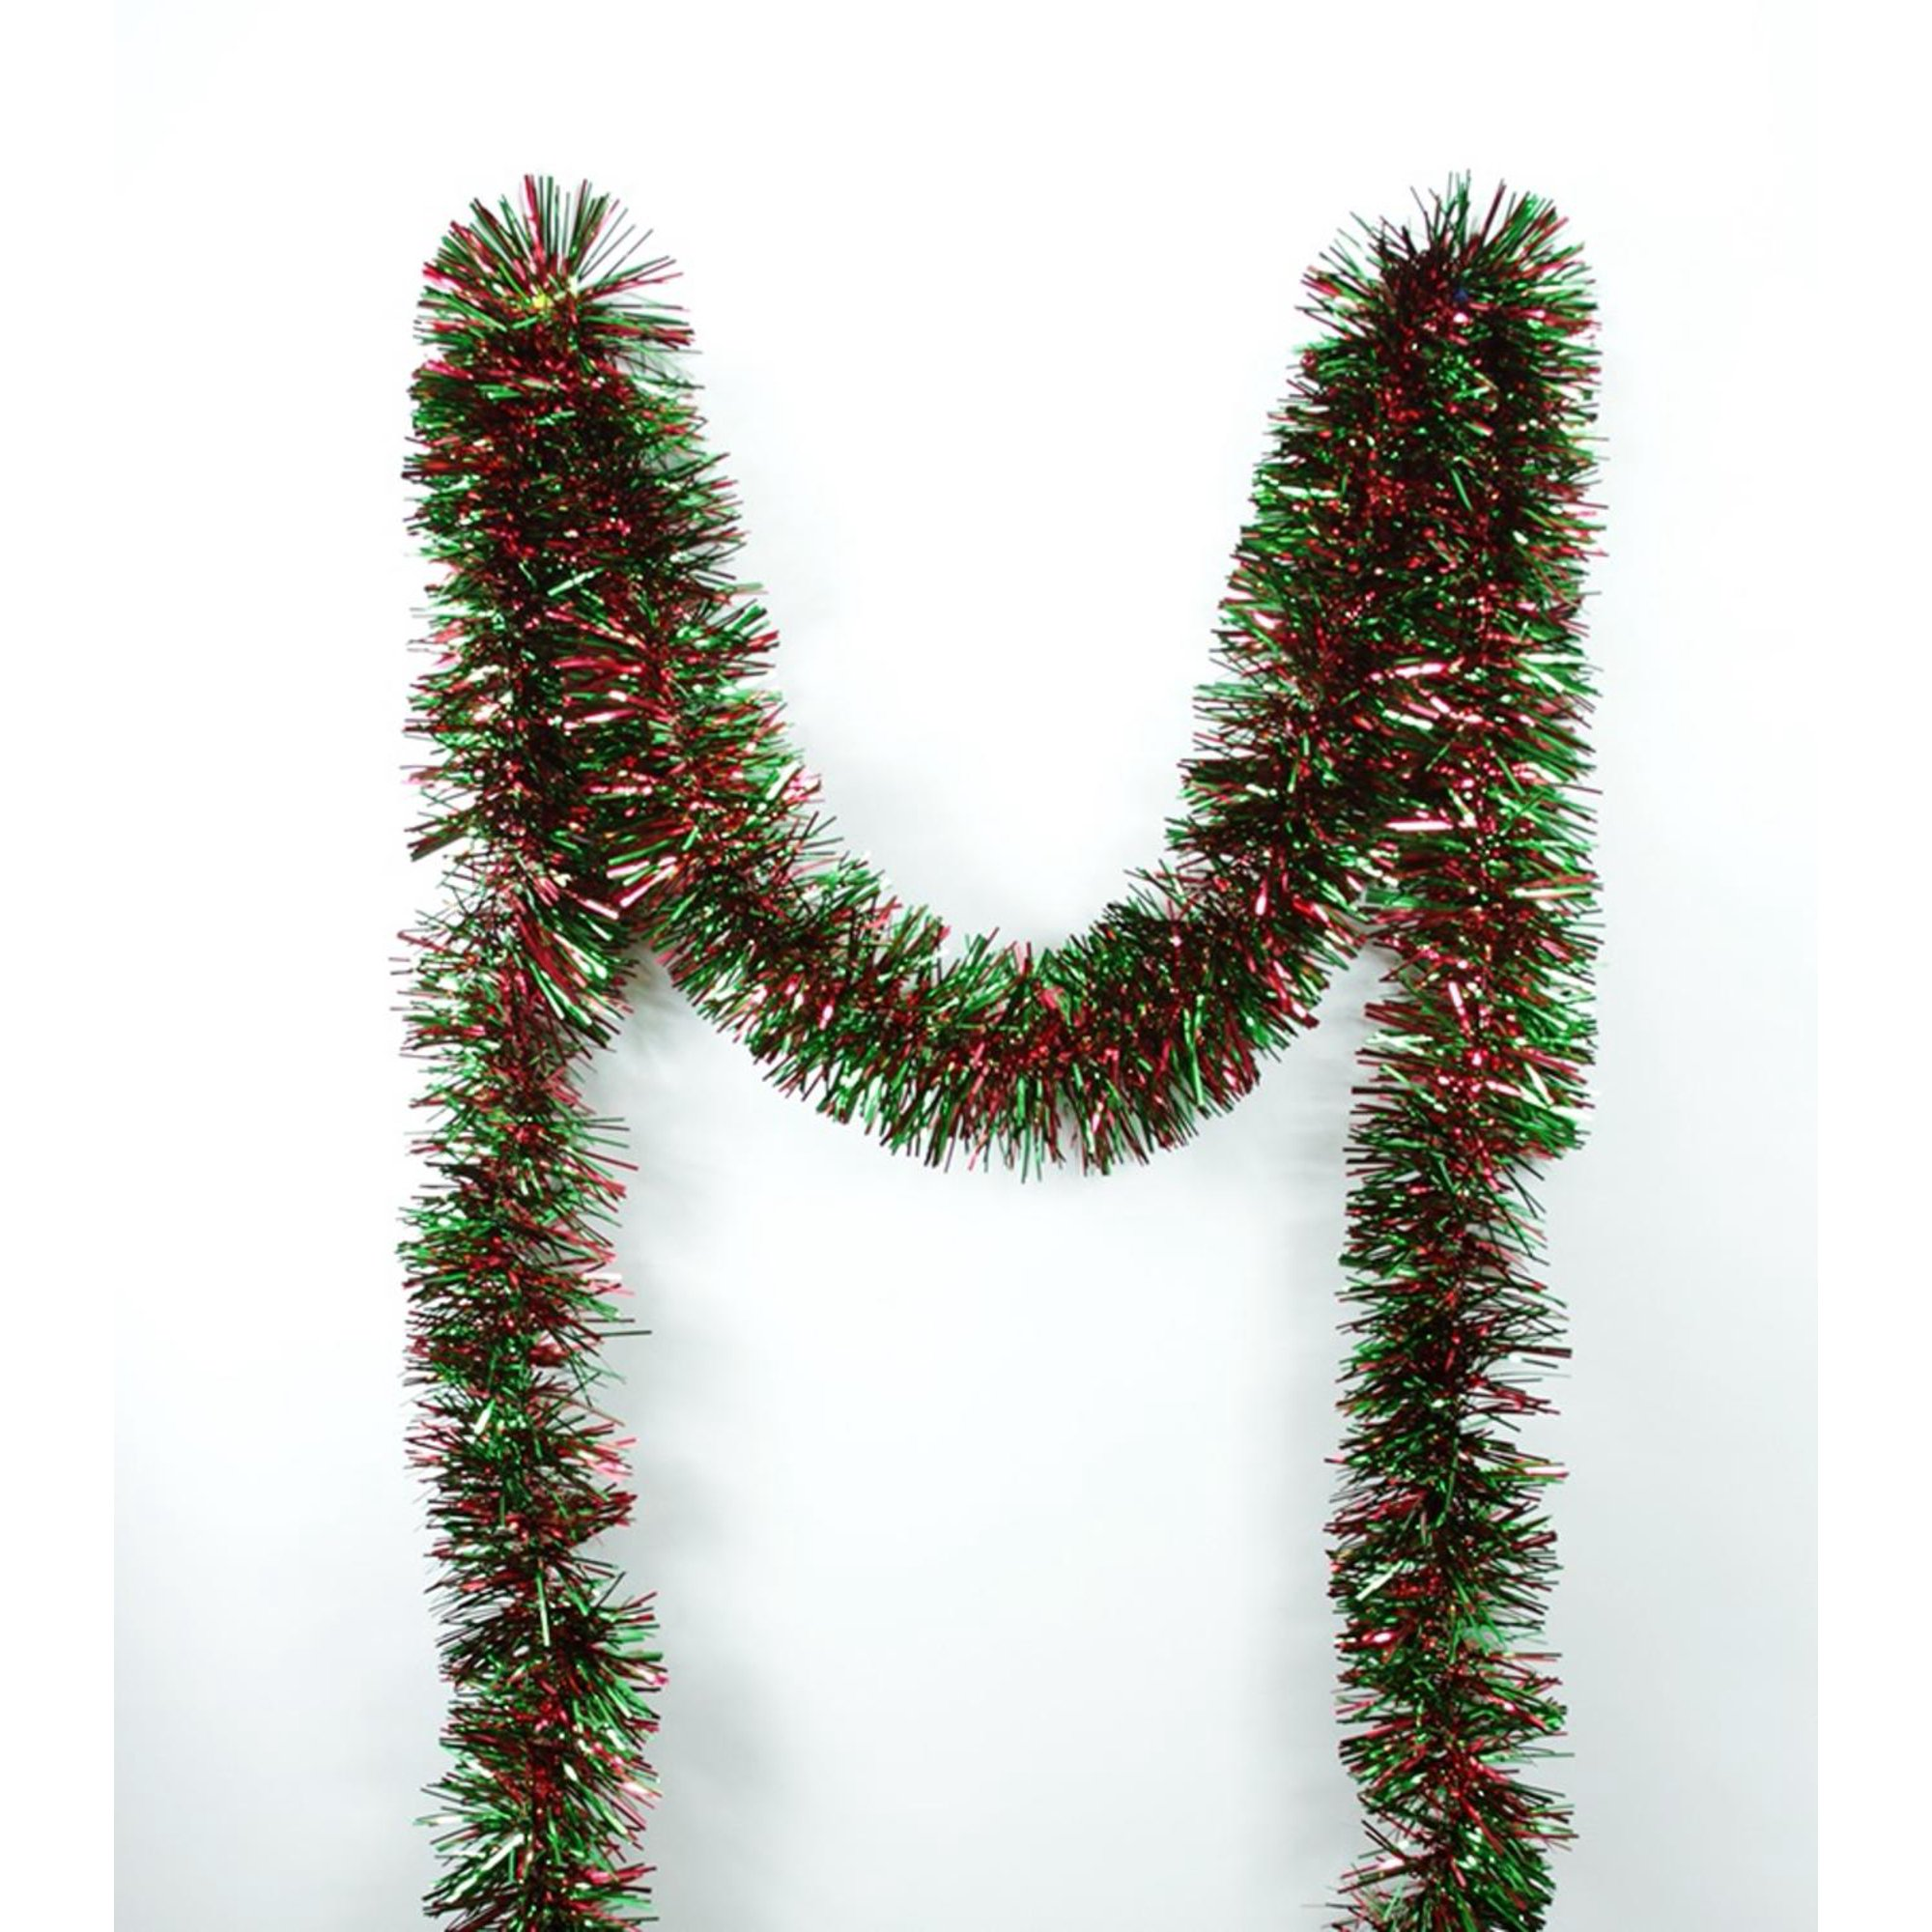 Christmas Tinsel Garland.50 Shiny Forest Green And Red Christmas Tinsel Garland Unlit